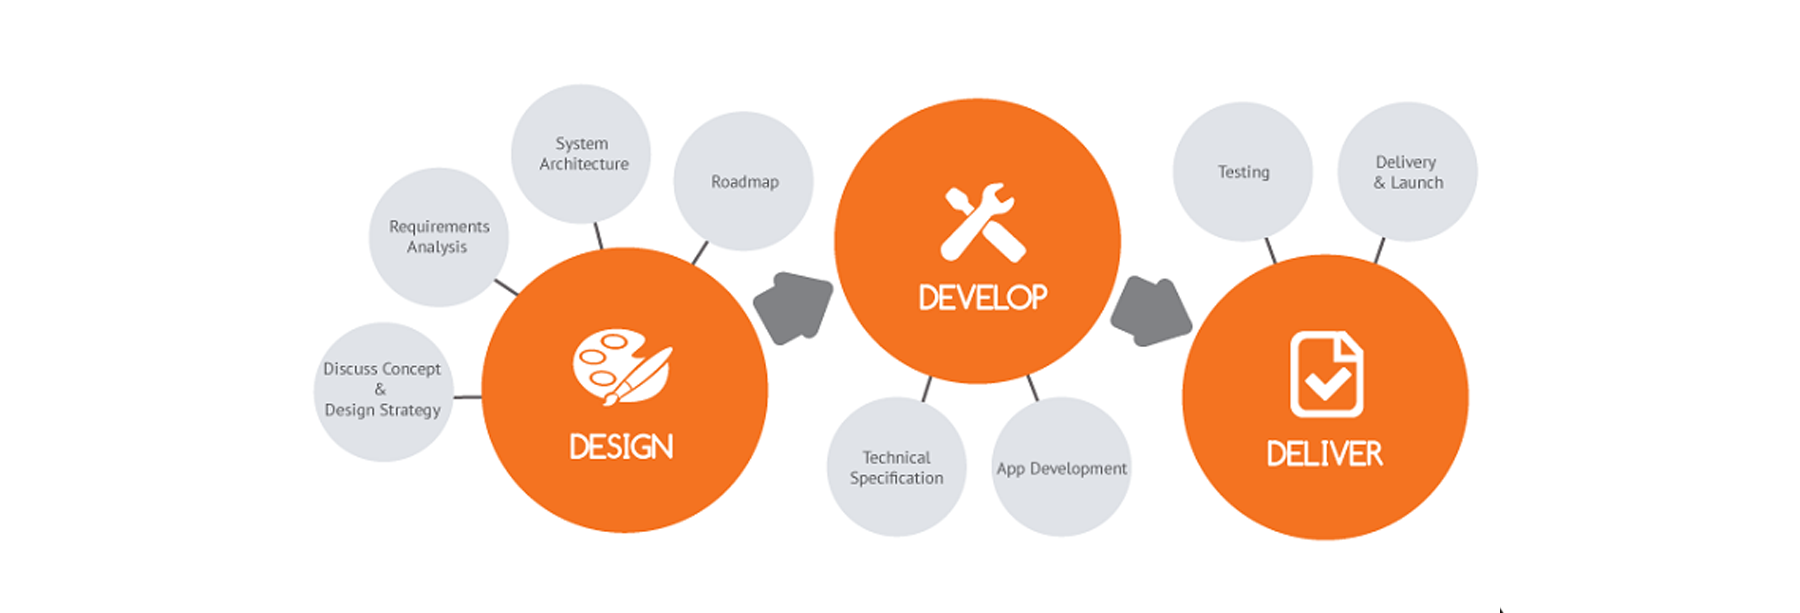 what-are-the-steps-involved-in-mobile-app-development